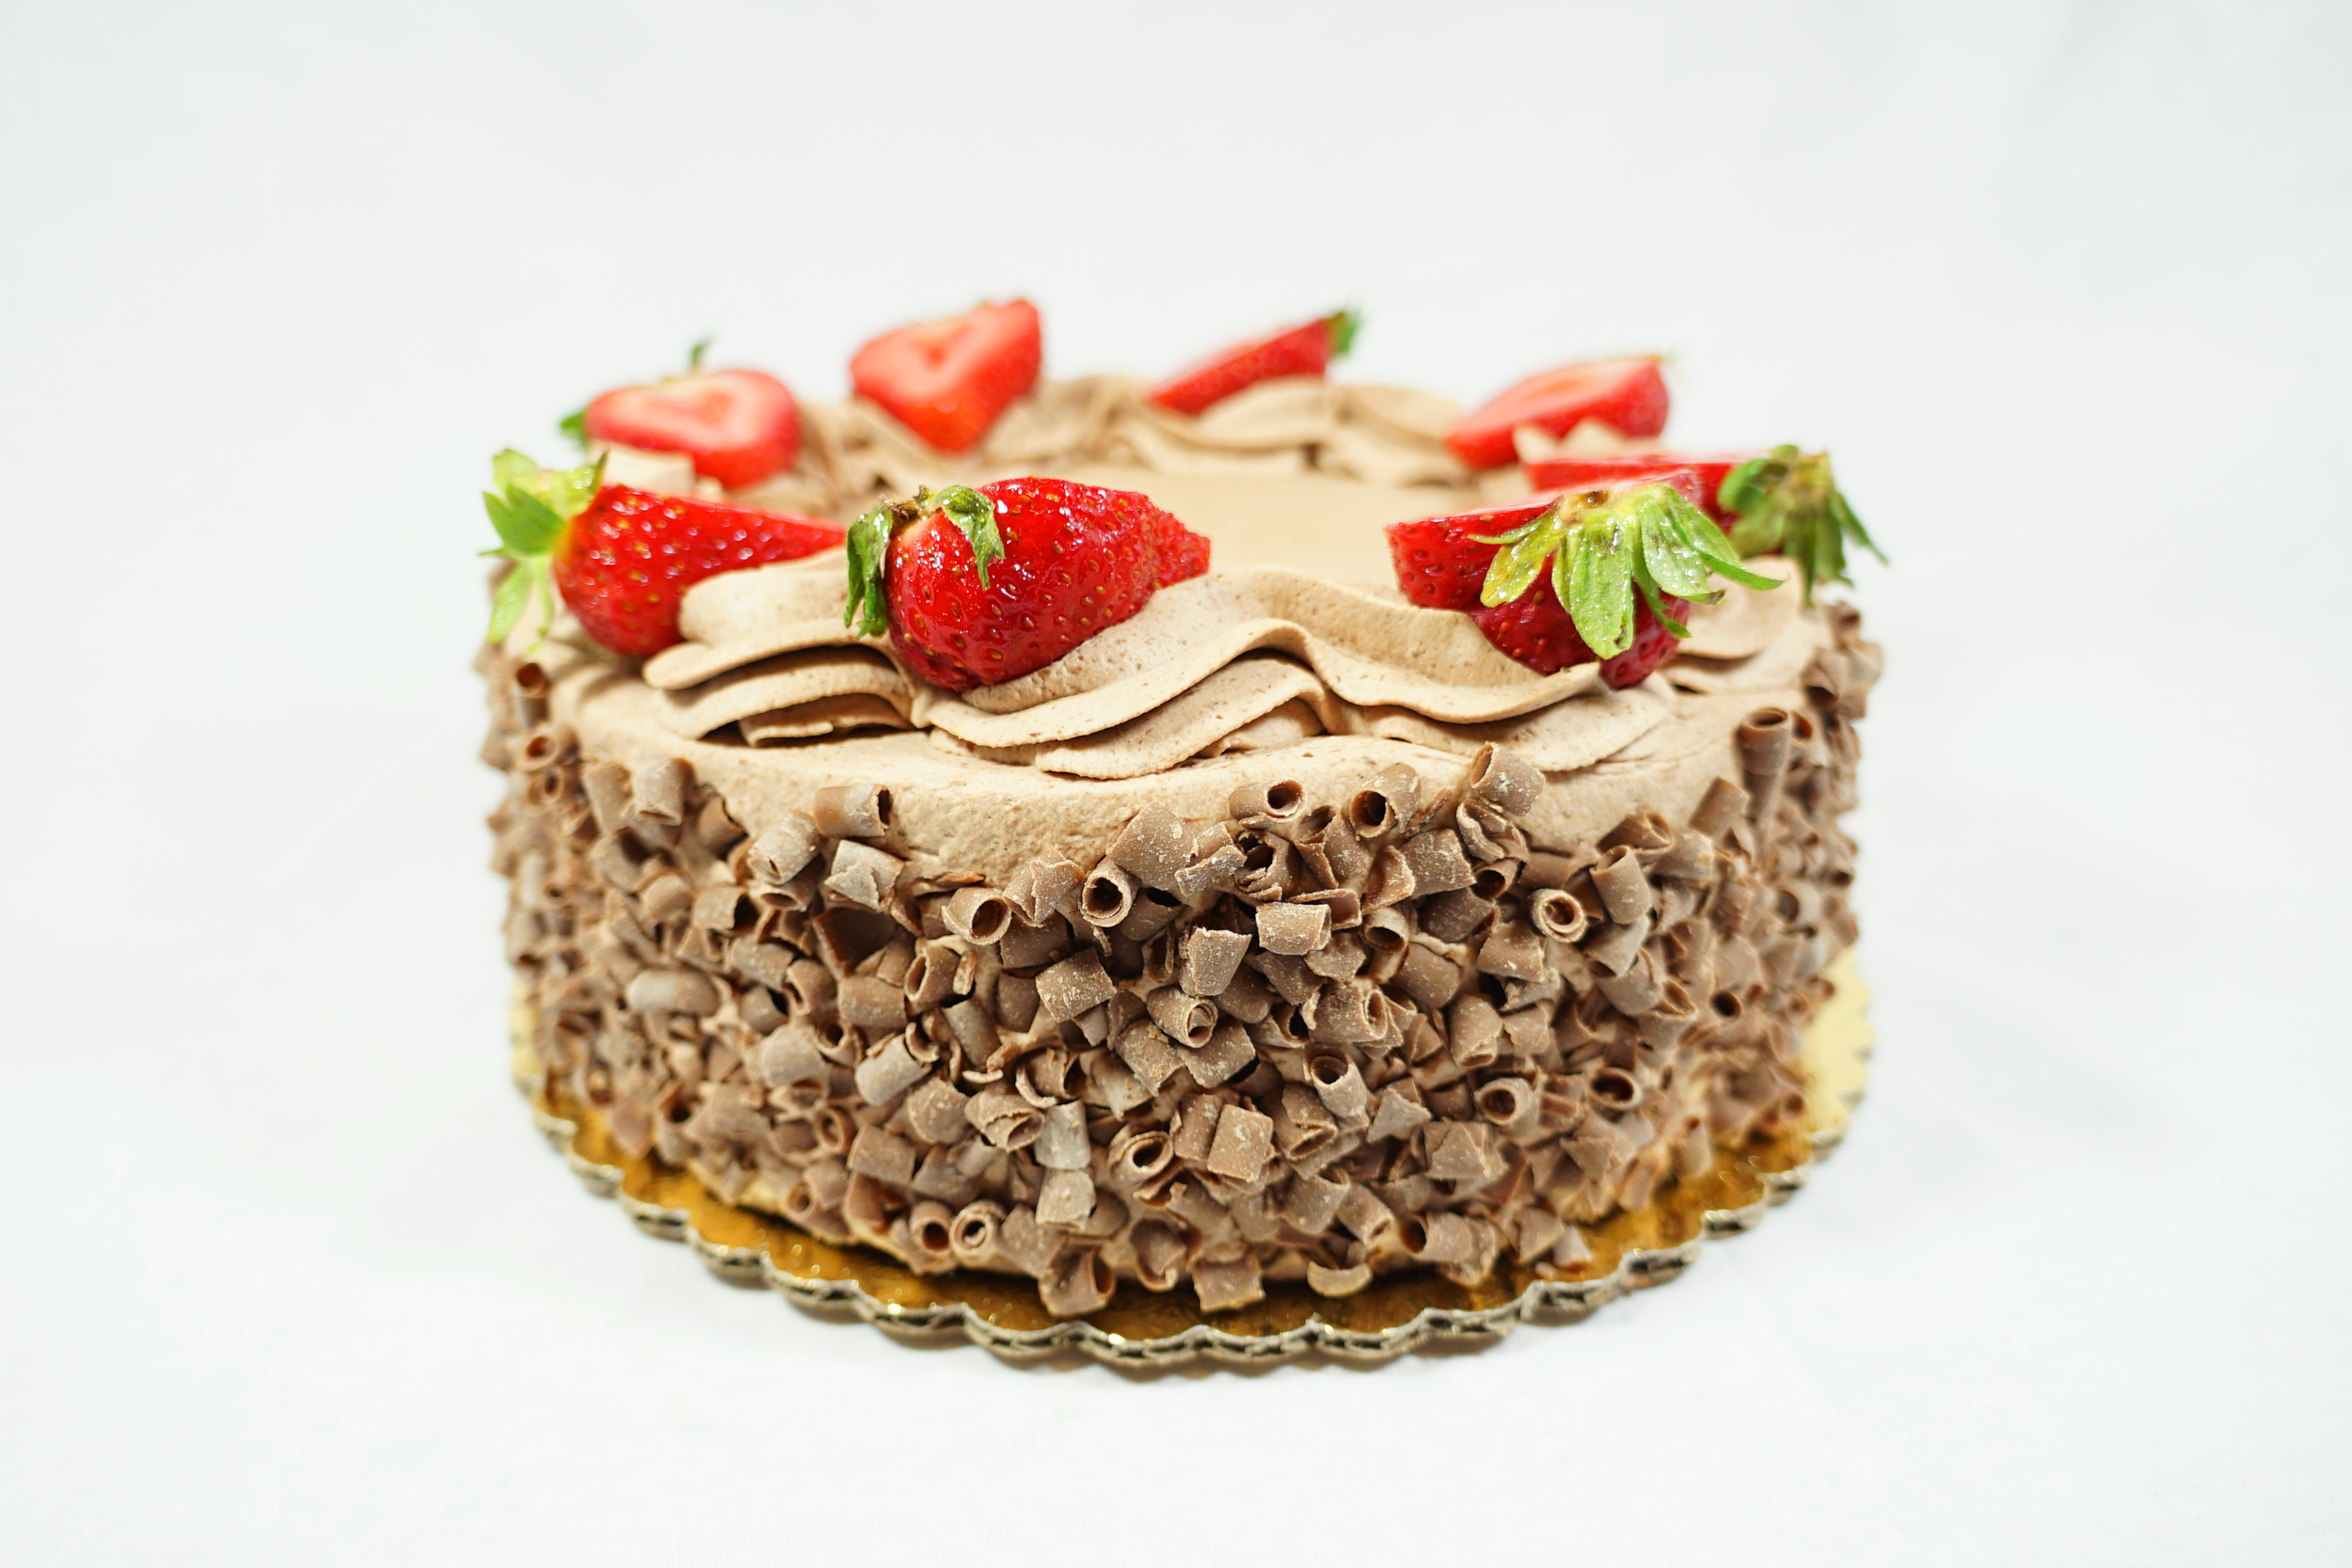 Chocolate S.S.C - A chocolate cake with raspberry syrup, chocolate Bavarian cream, a layer of raspberry coulis, fresh cut strawberries and strawberry preserve filling. Iced with chocolate whipped cream and sides covered with chocolate curls.